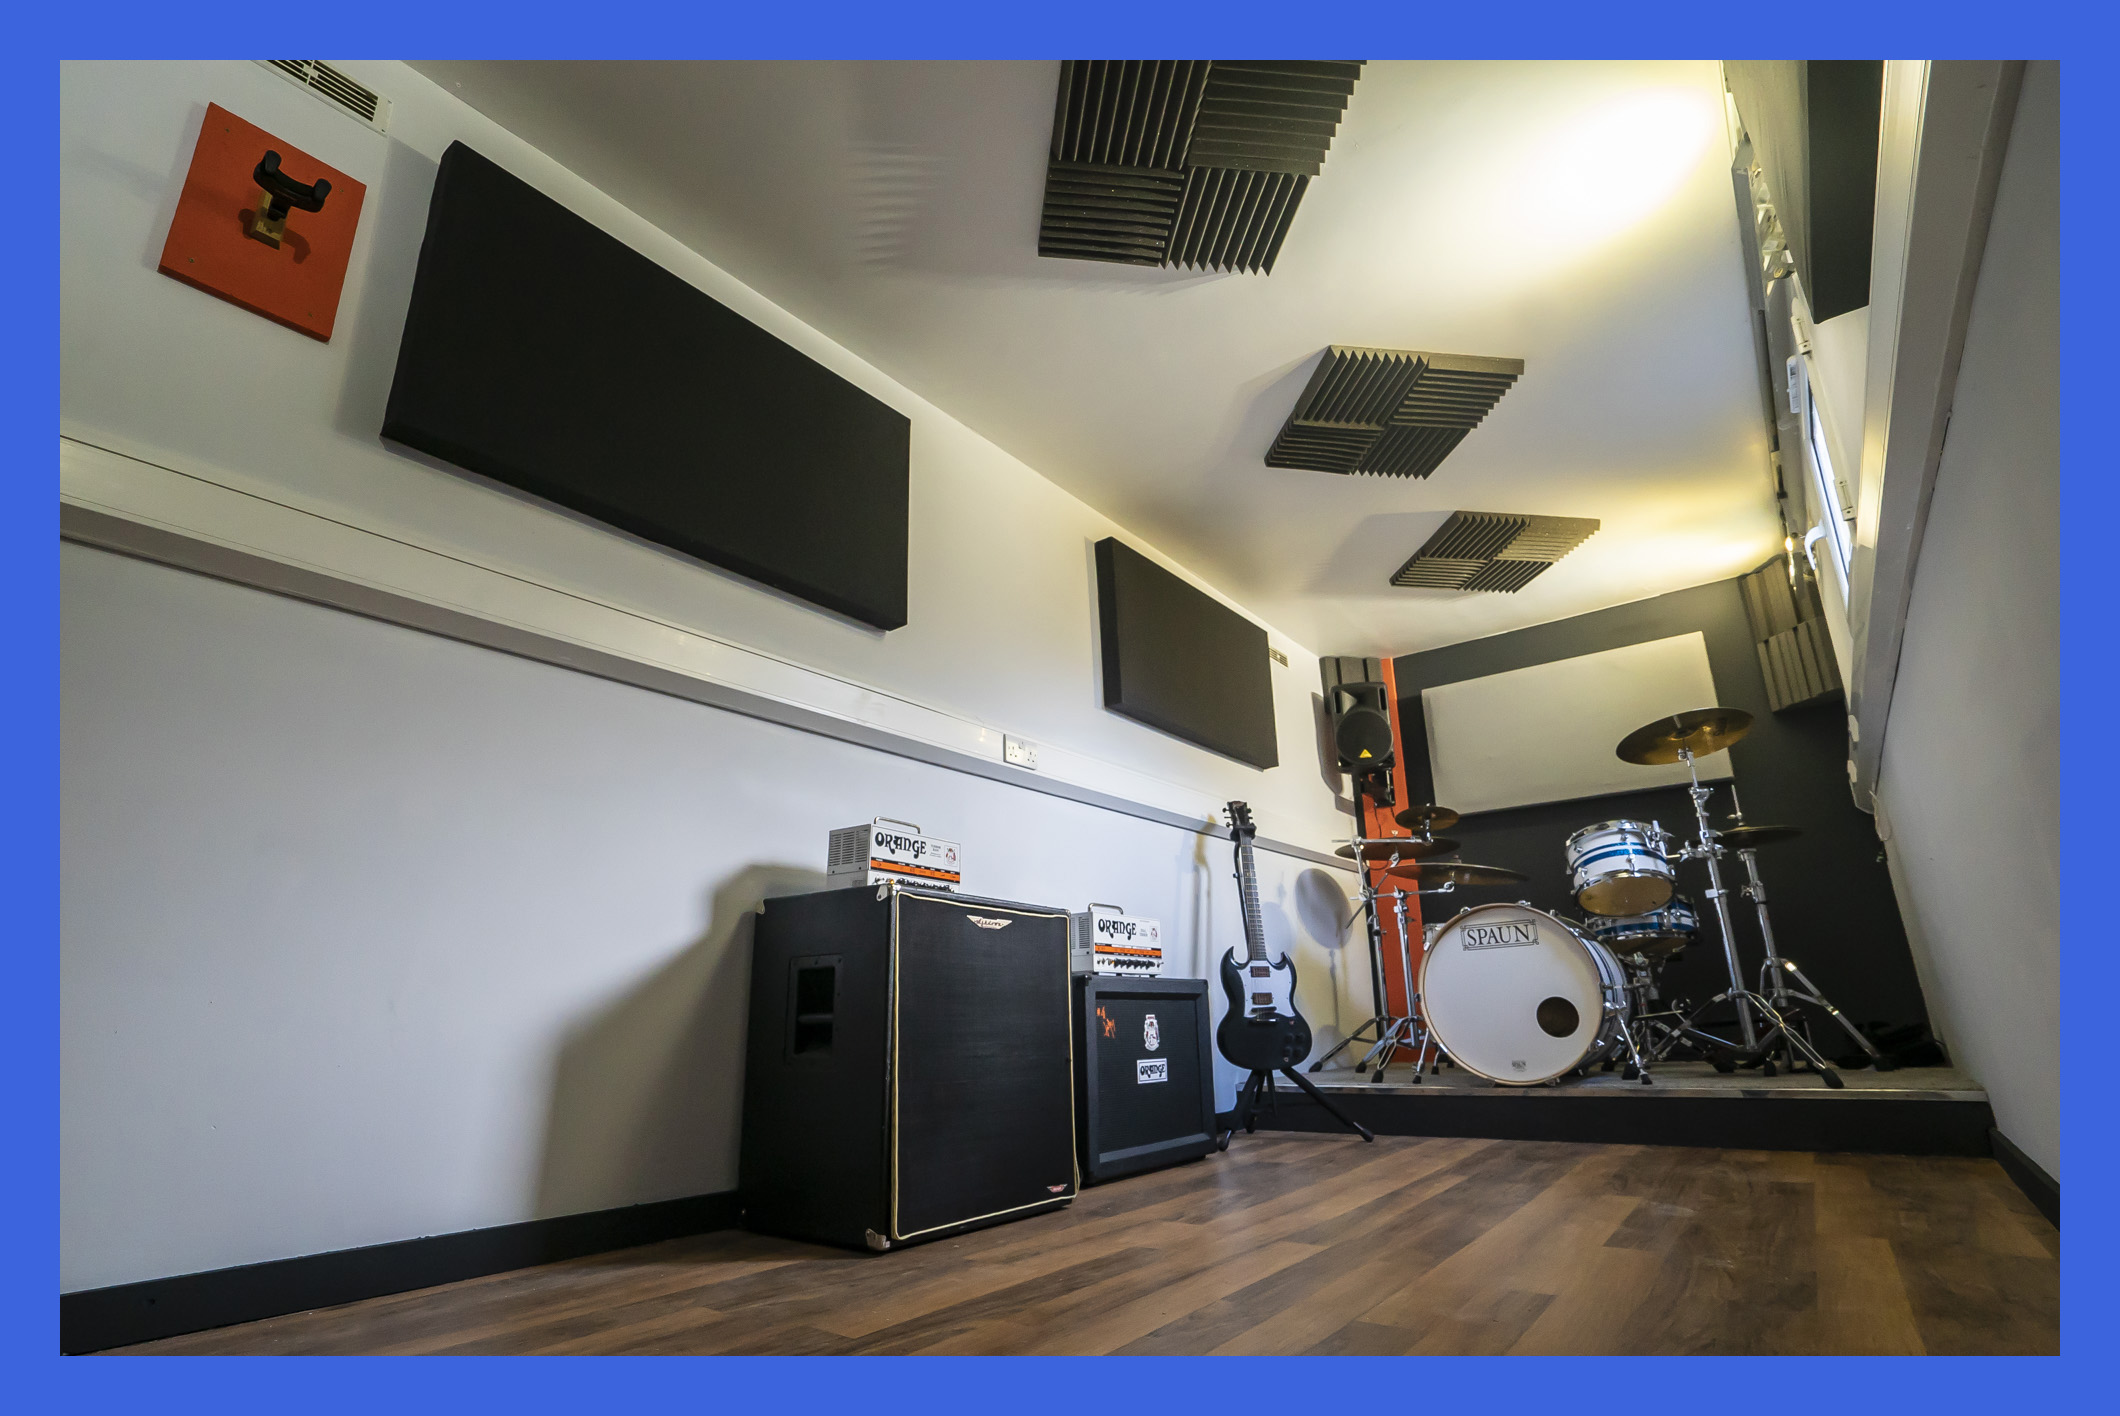 - Orange Tiny Terror + Blackstar 50w Cab- Ashdown Bass Combo- DW PDP 805 Drum Kit- Behringer B210D Eurolive 200W PA- Vocal microphones * 2 - 00:00 - 17:00 | £6PH17:00 - 00:00 | £8PH